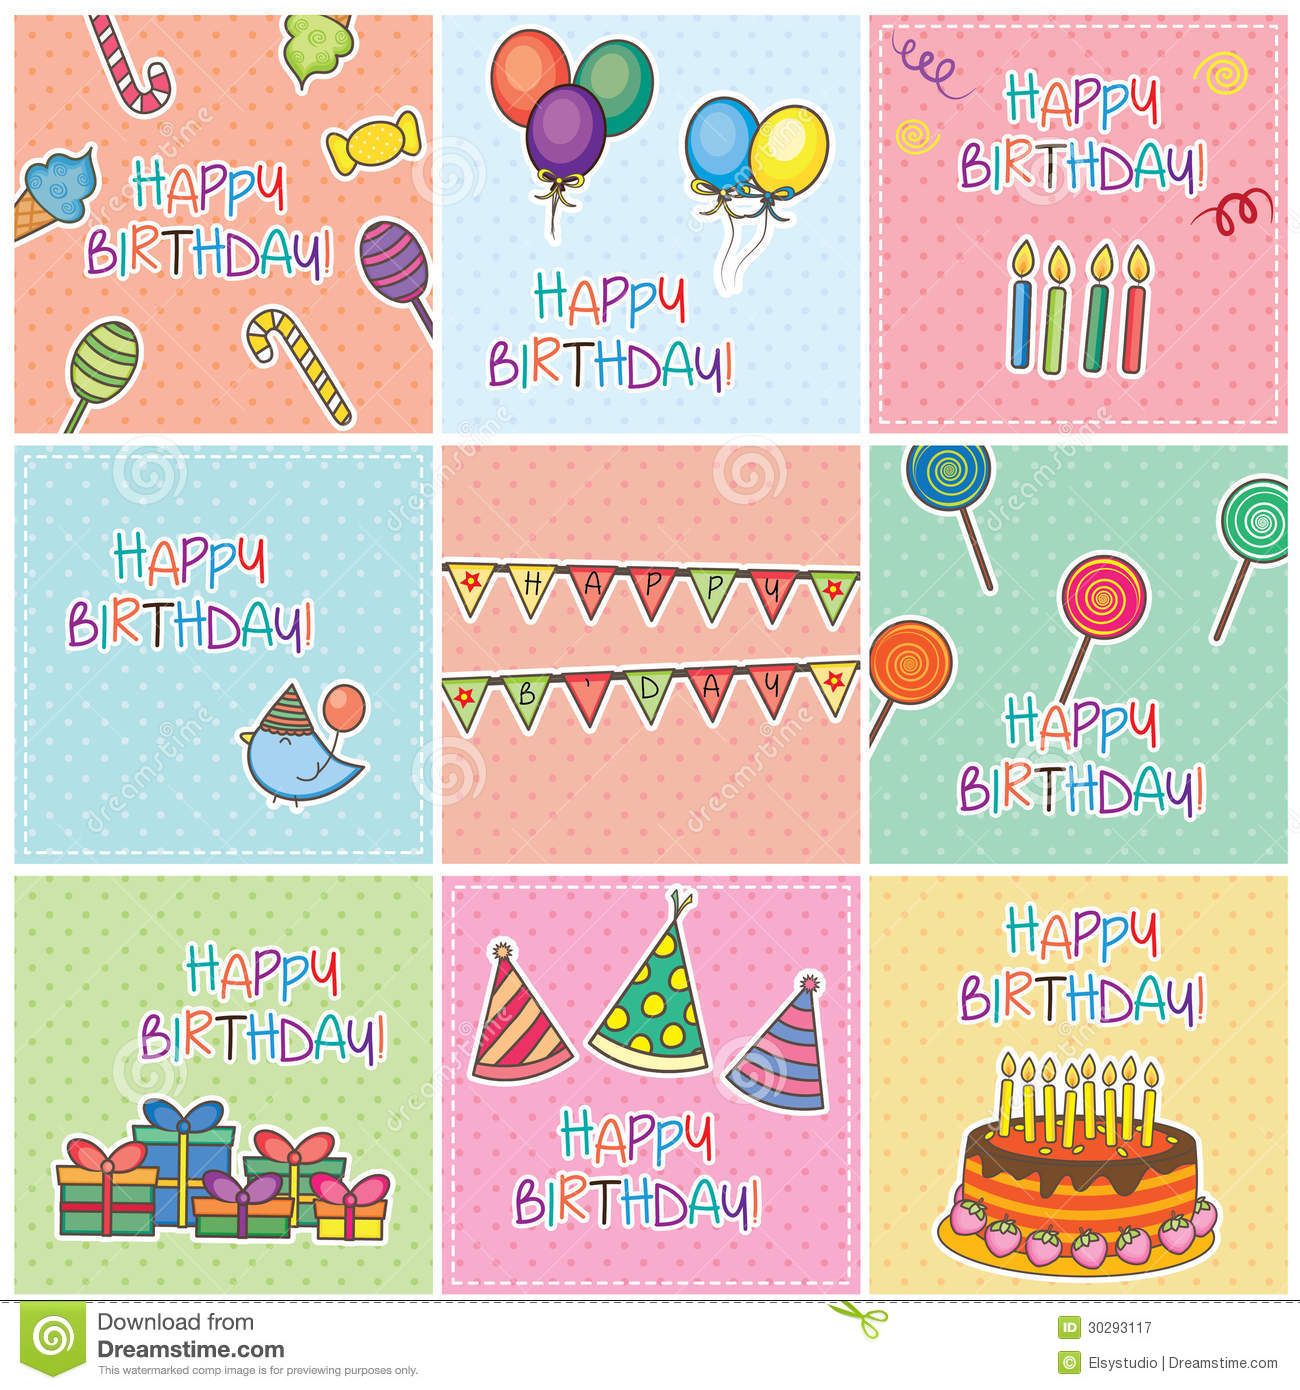 birthday cards digital set royalty free stock photography  image, Birthday card